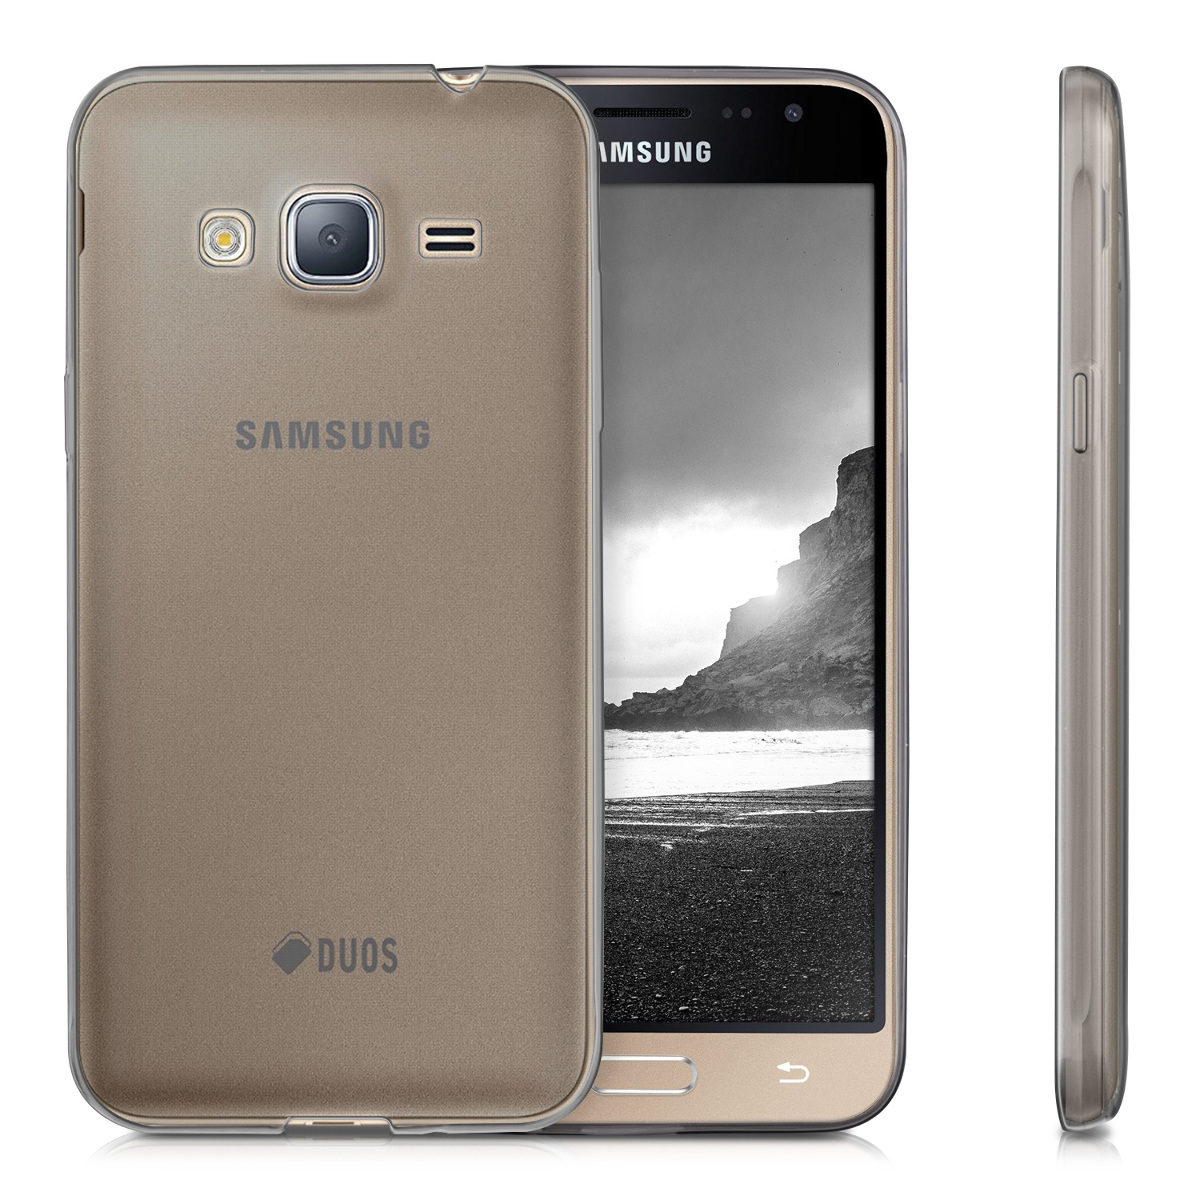 kwmobile-ETUI-ULTRA-FIN-POUR-SAMSUNG-GALAXY-J3-2016-DUOS-HOUSSE-PROTEGE-CHOCS